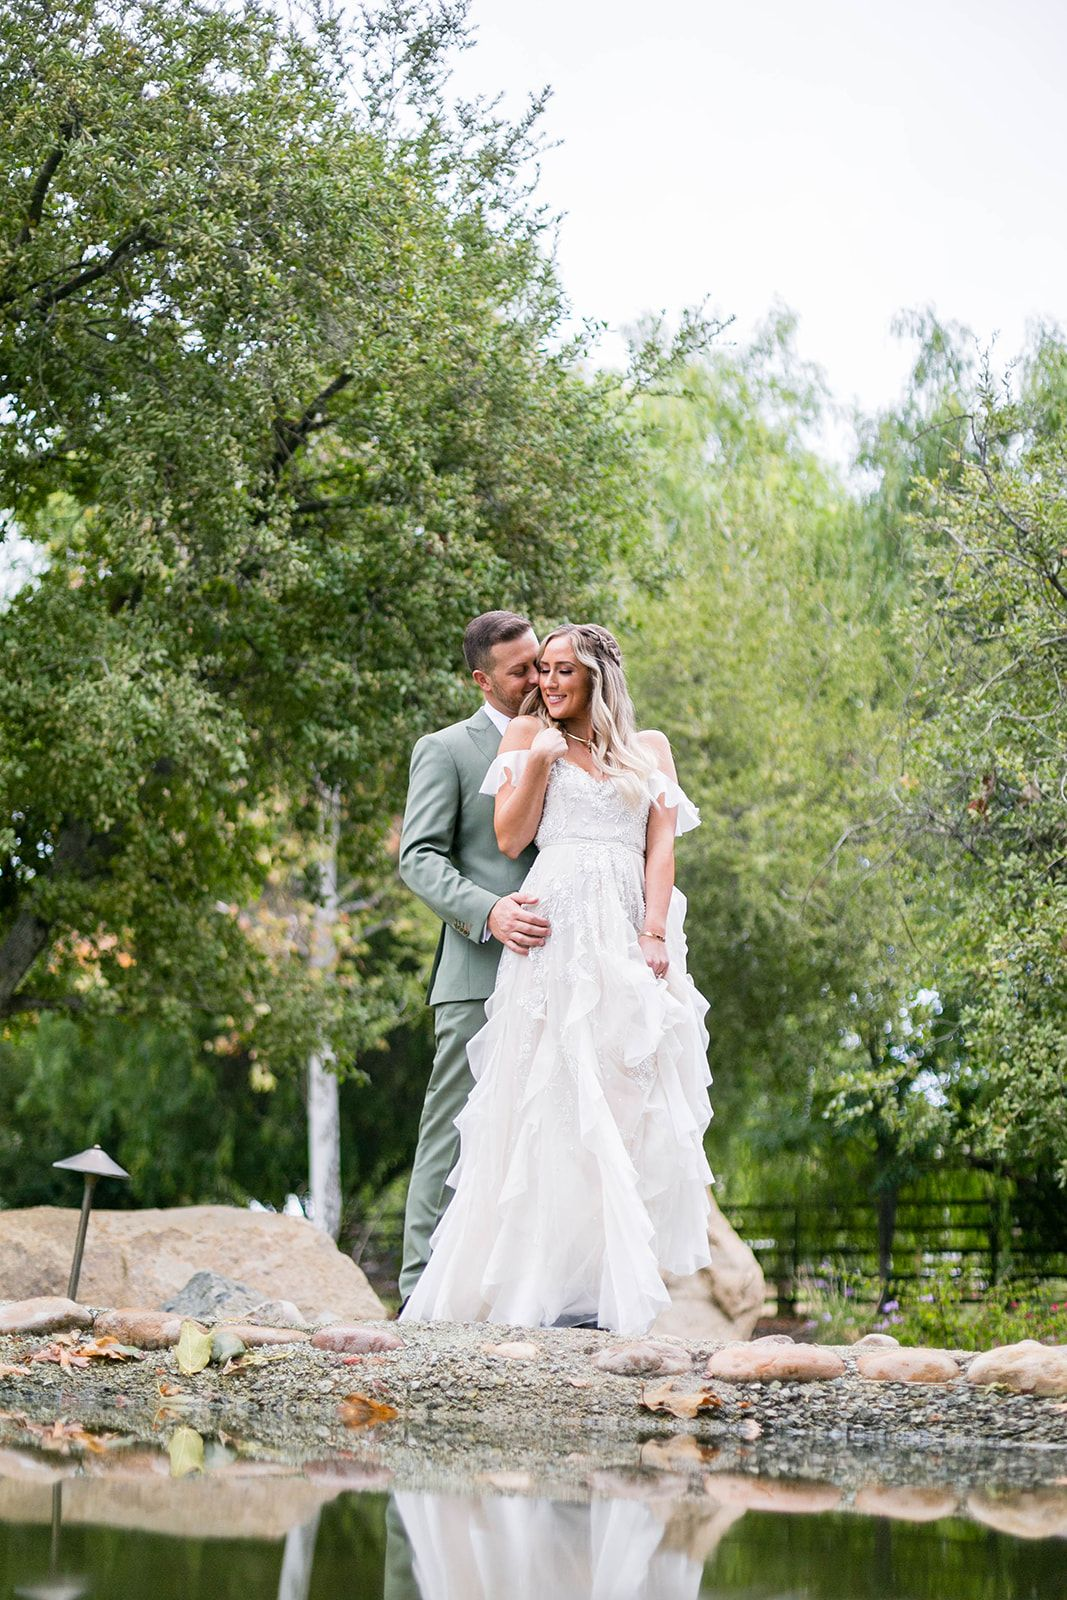 Bride and groom pose at barn wedding Galway Downs in